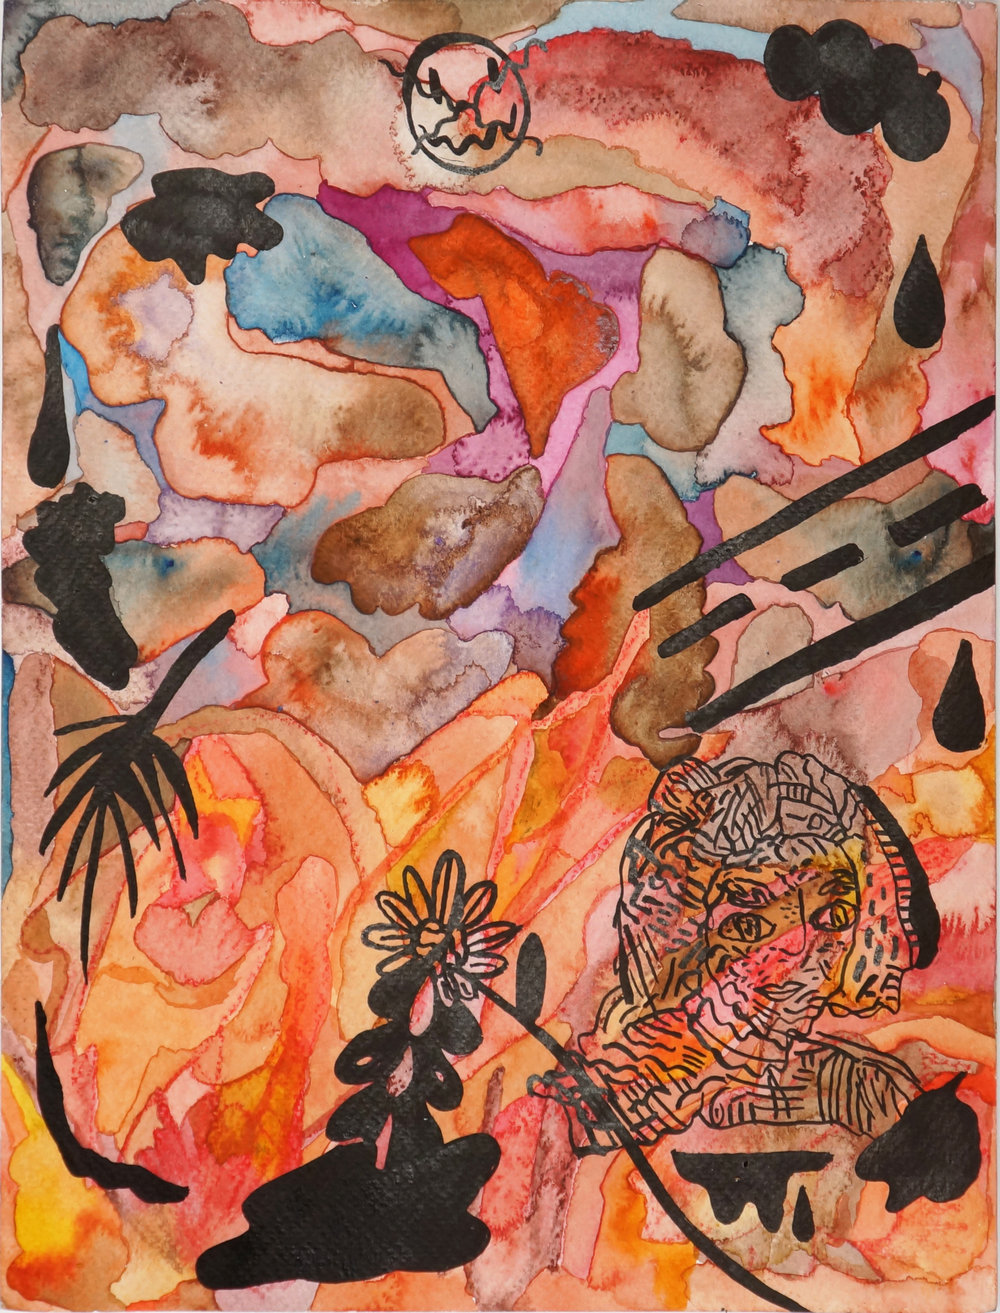 Maximus Jacobo Valentine Oppenheimer (meatgrinder)  Everything that I said I didn't know,  2018 watercolor and ink on paper 12 x 9 in.